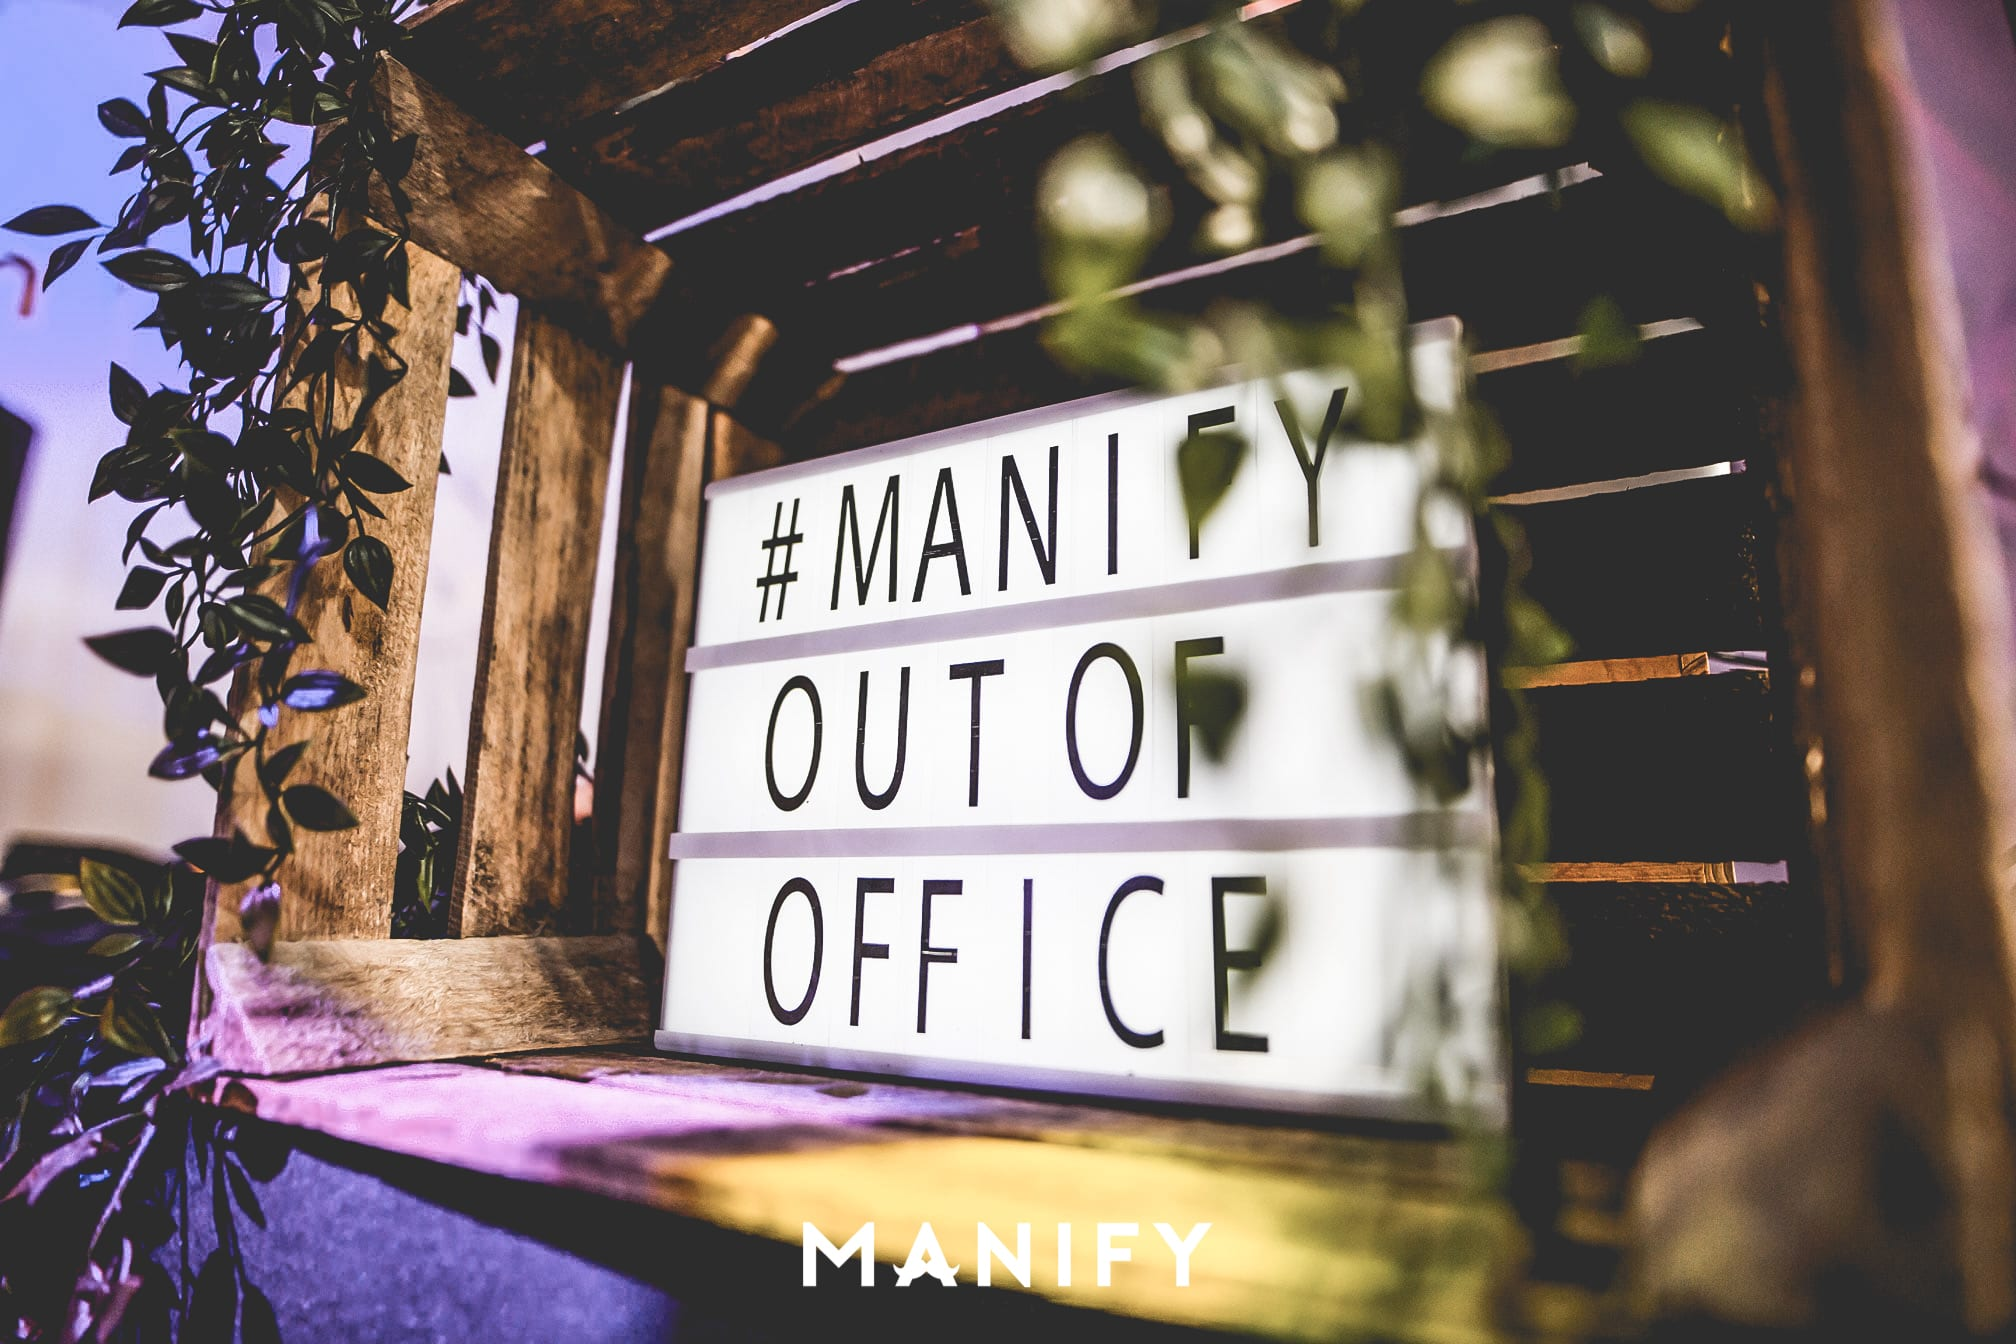 Manify_Out_of_office_EHV-WM-38-manify